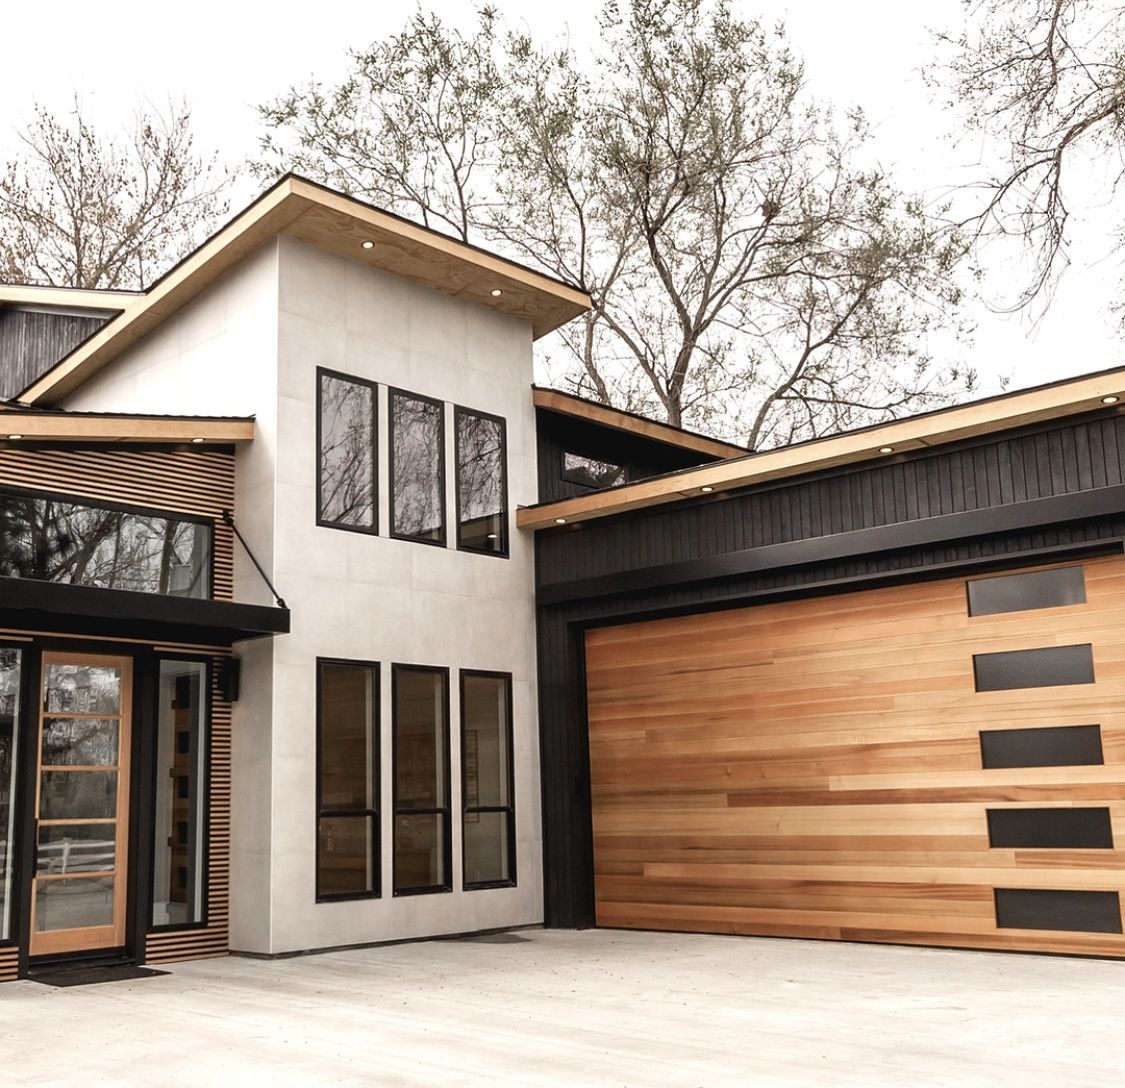 A Mid Century Modern Garage Door Brings Contemporary Style To The